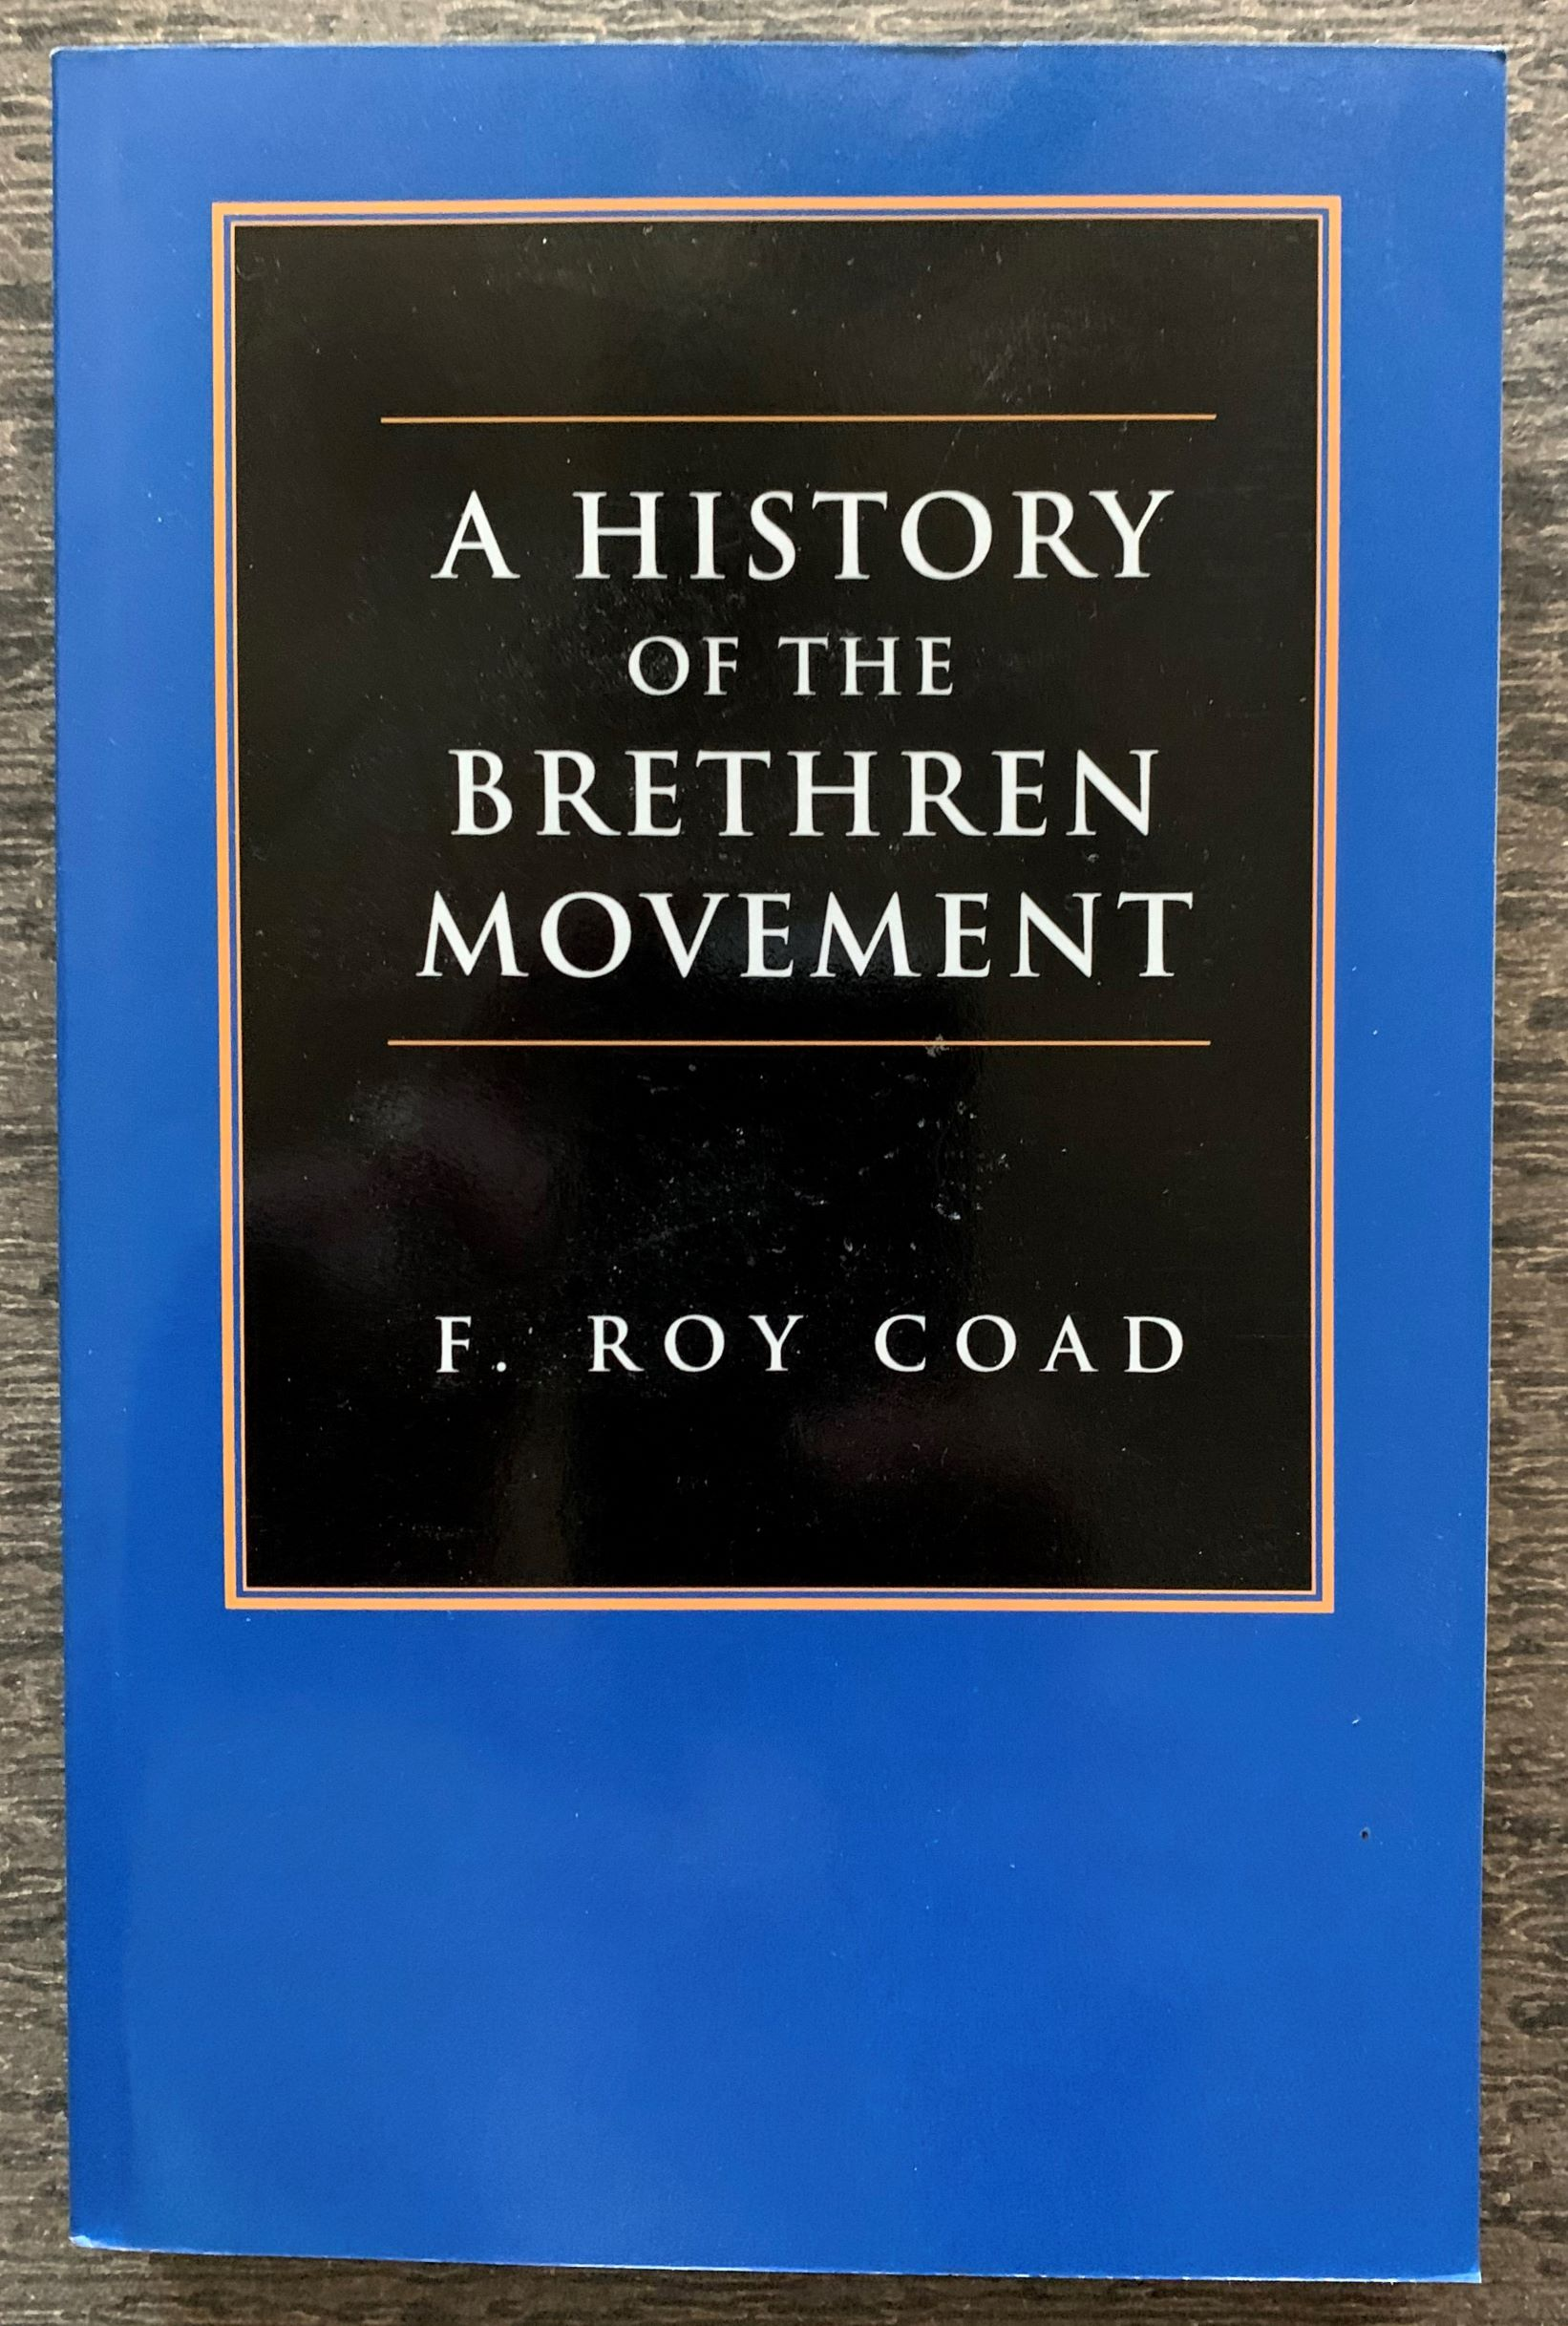 Image for A History of the Brethren Movement.